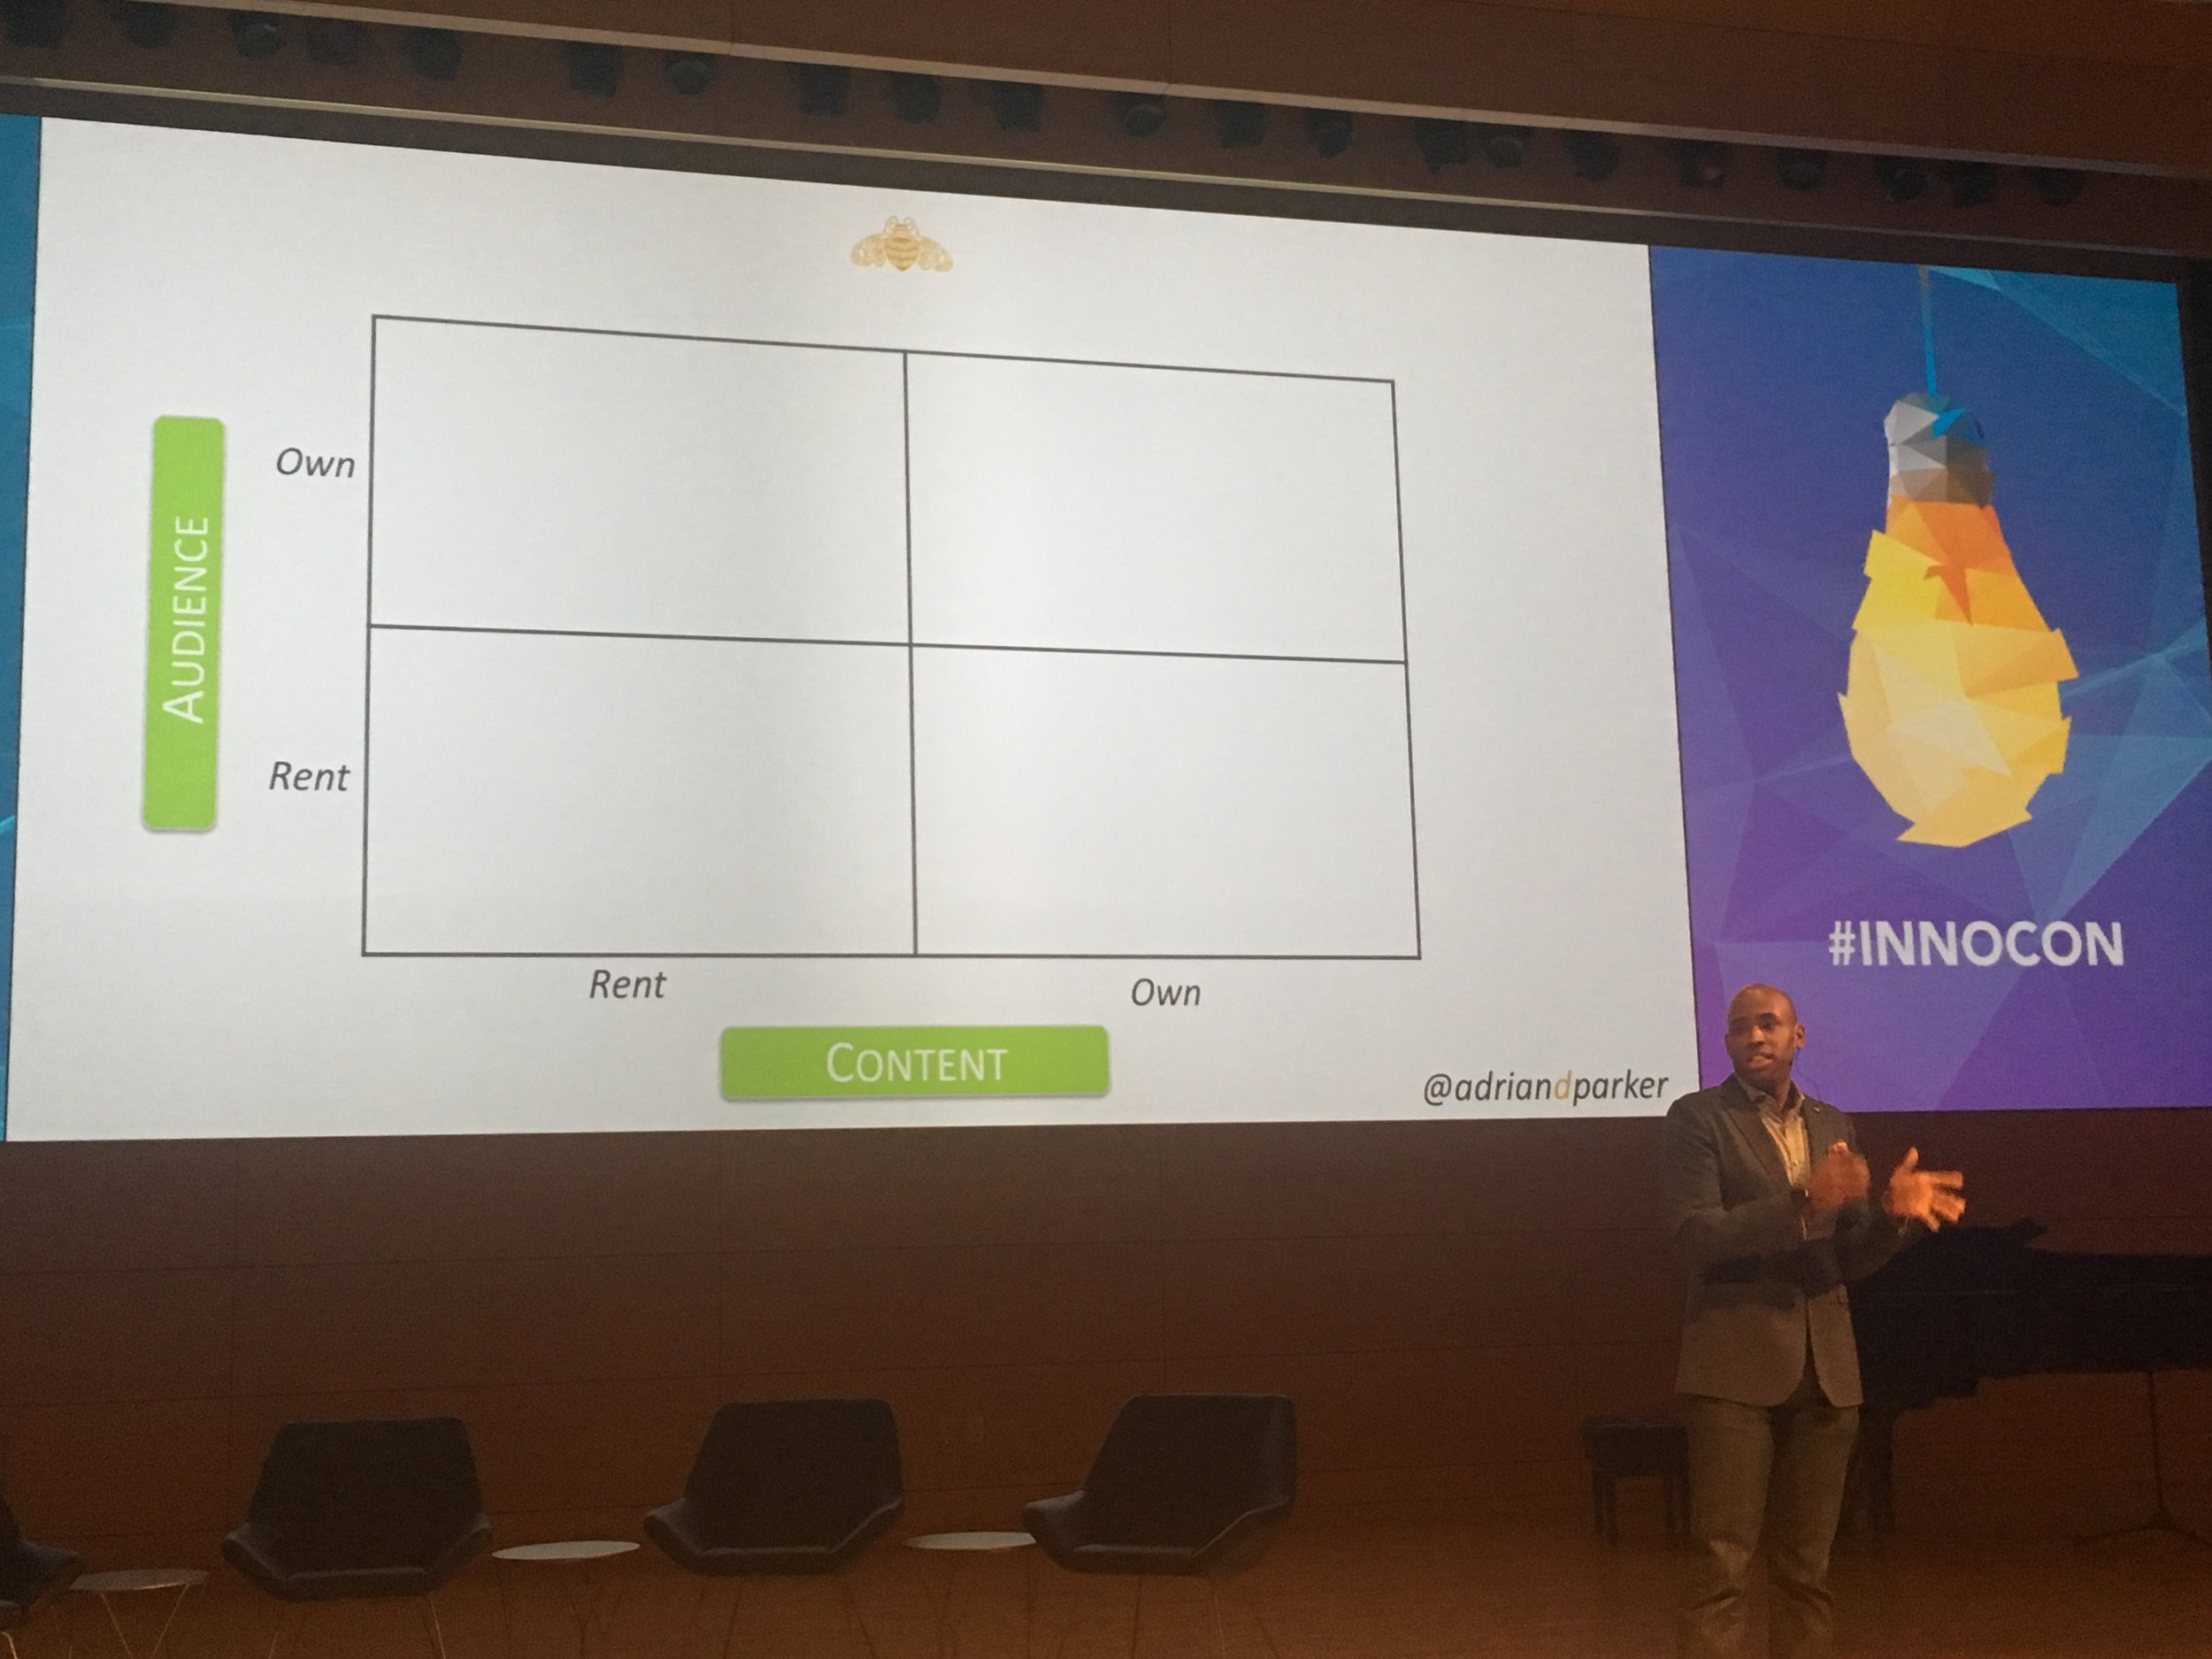 The audience and qontent business model matrix as presented by Adrian Parker at #innocon